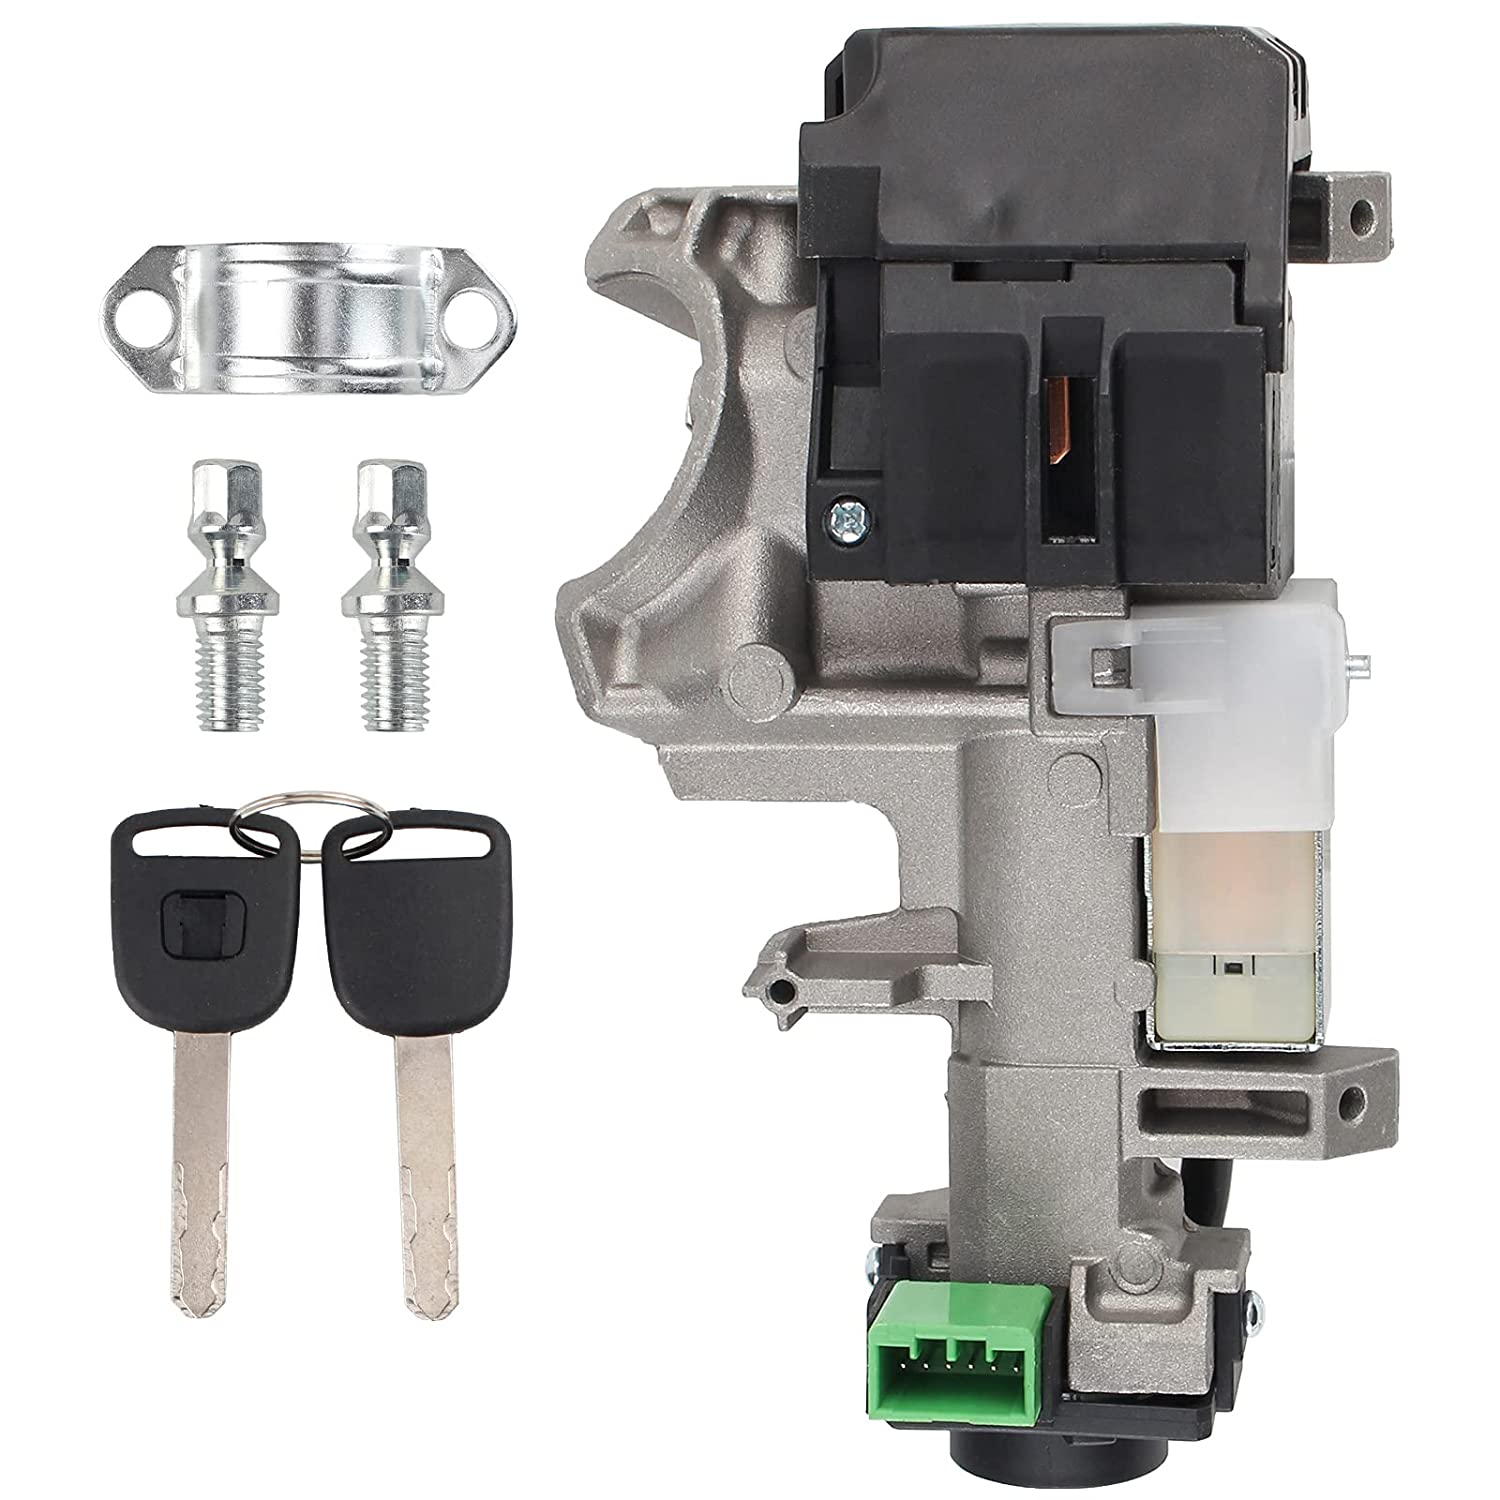 AUTOKAY Ignition Max 72% OFF Max 49% OFF Switch Lock Cylinder wi Trans 35100-SDA-A71Auto